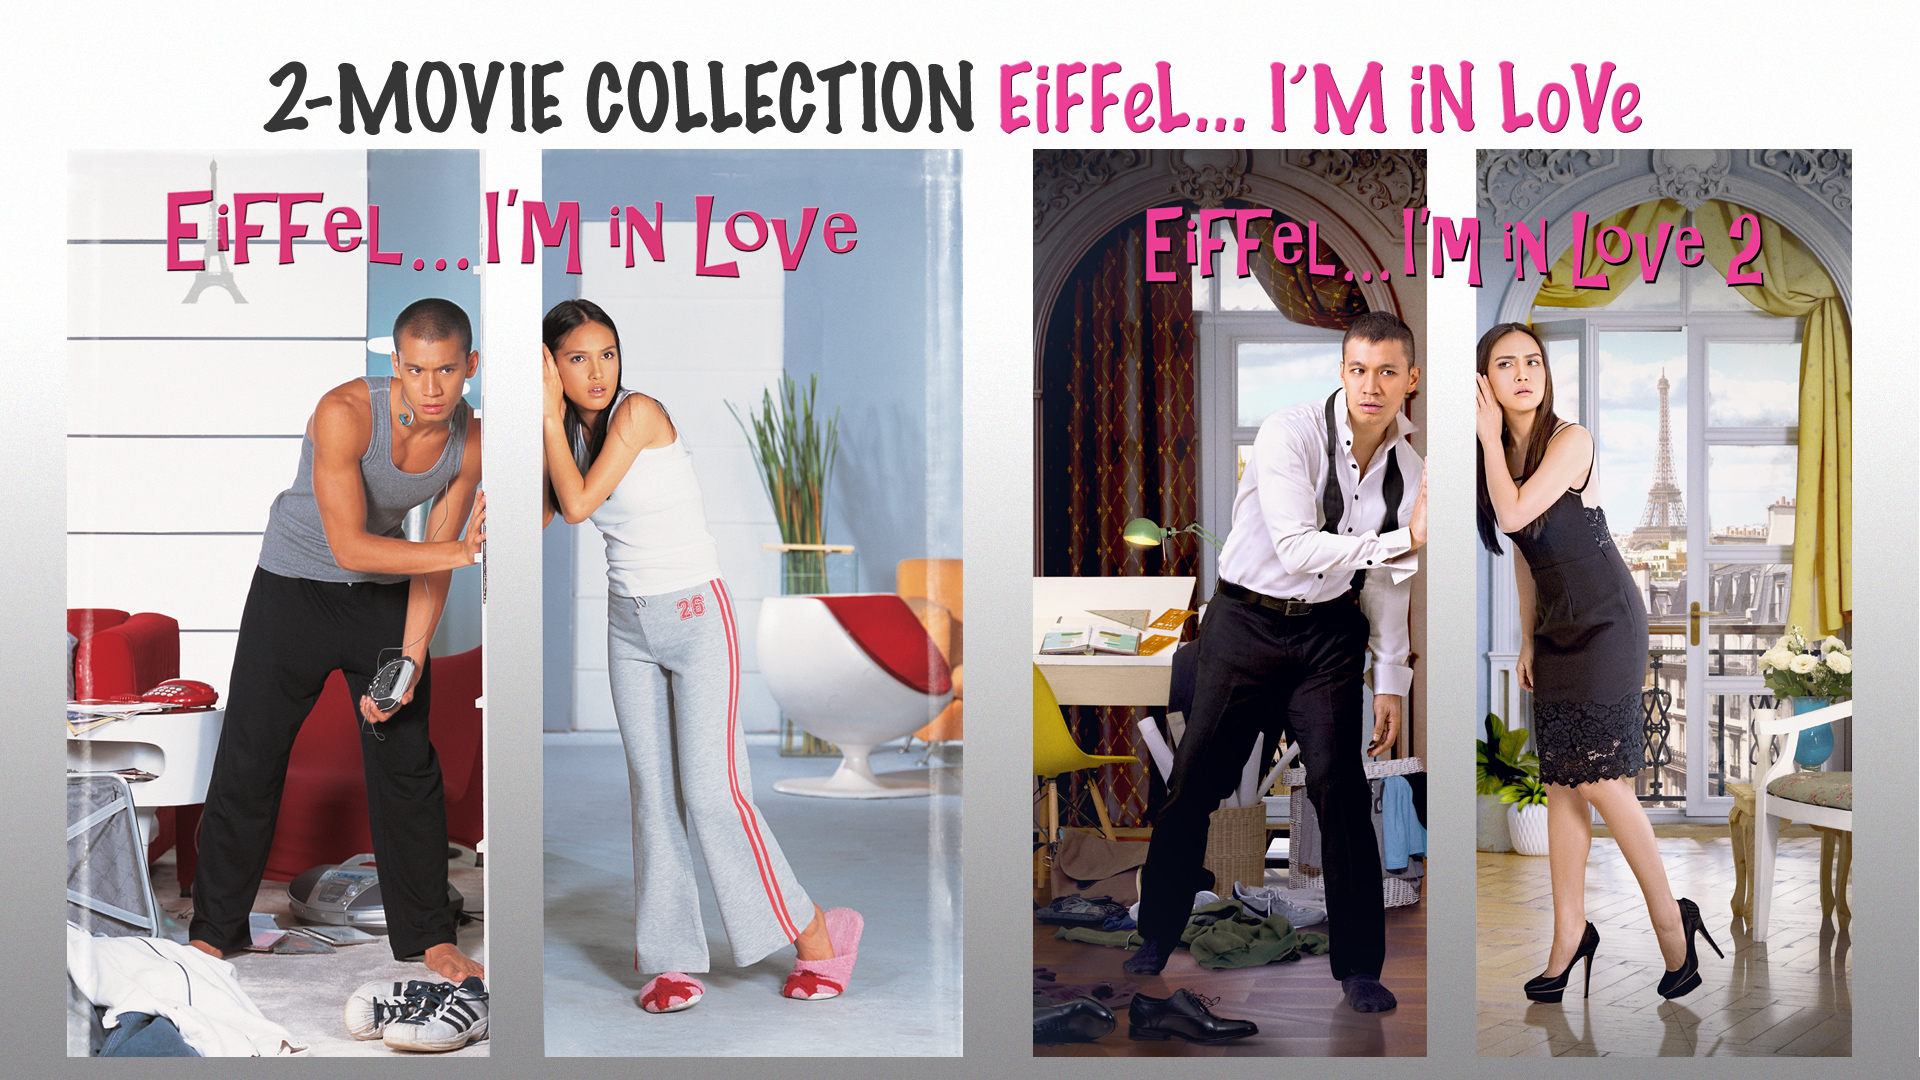 2-MOVIE COLLECTION EIFFEL I'M IN LOVE